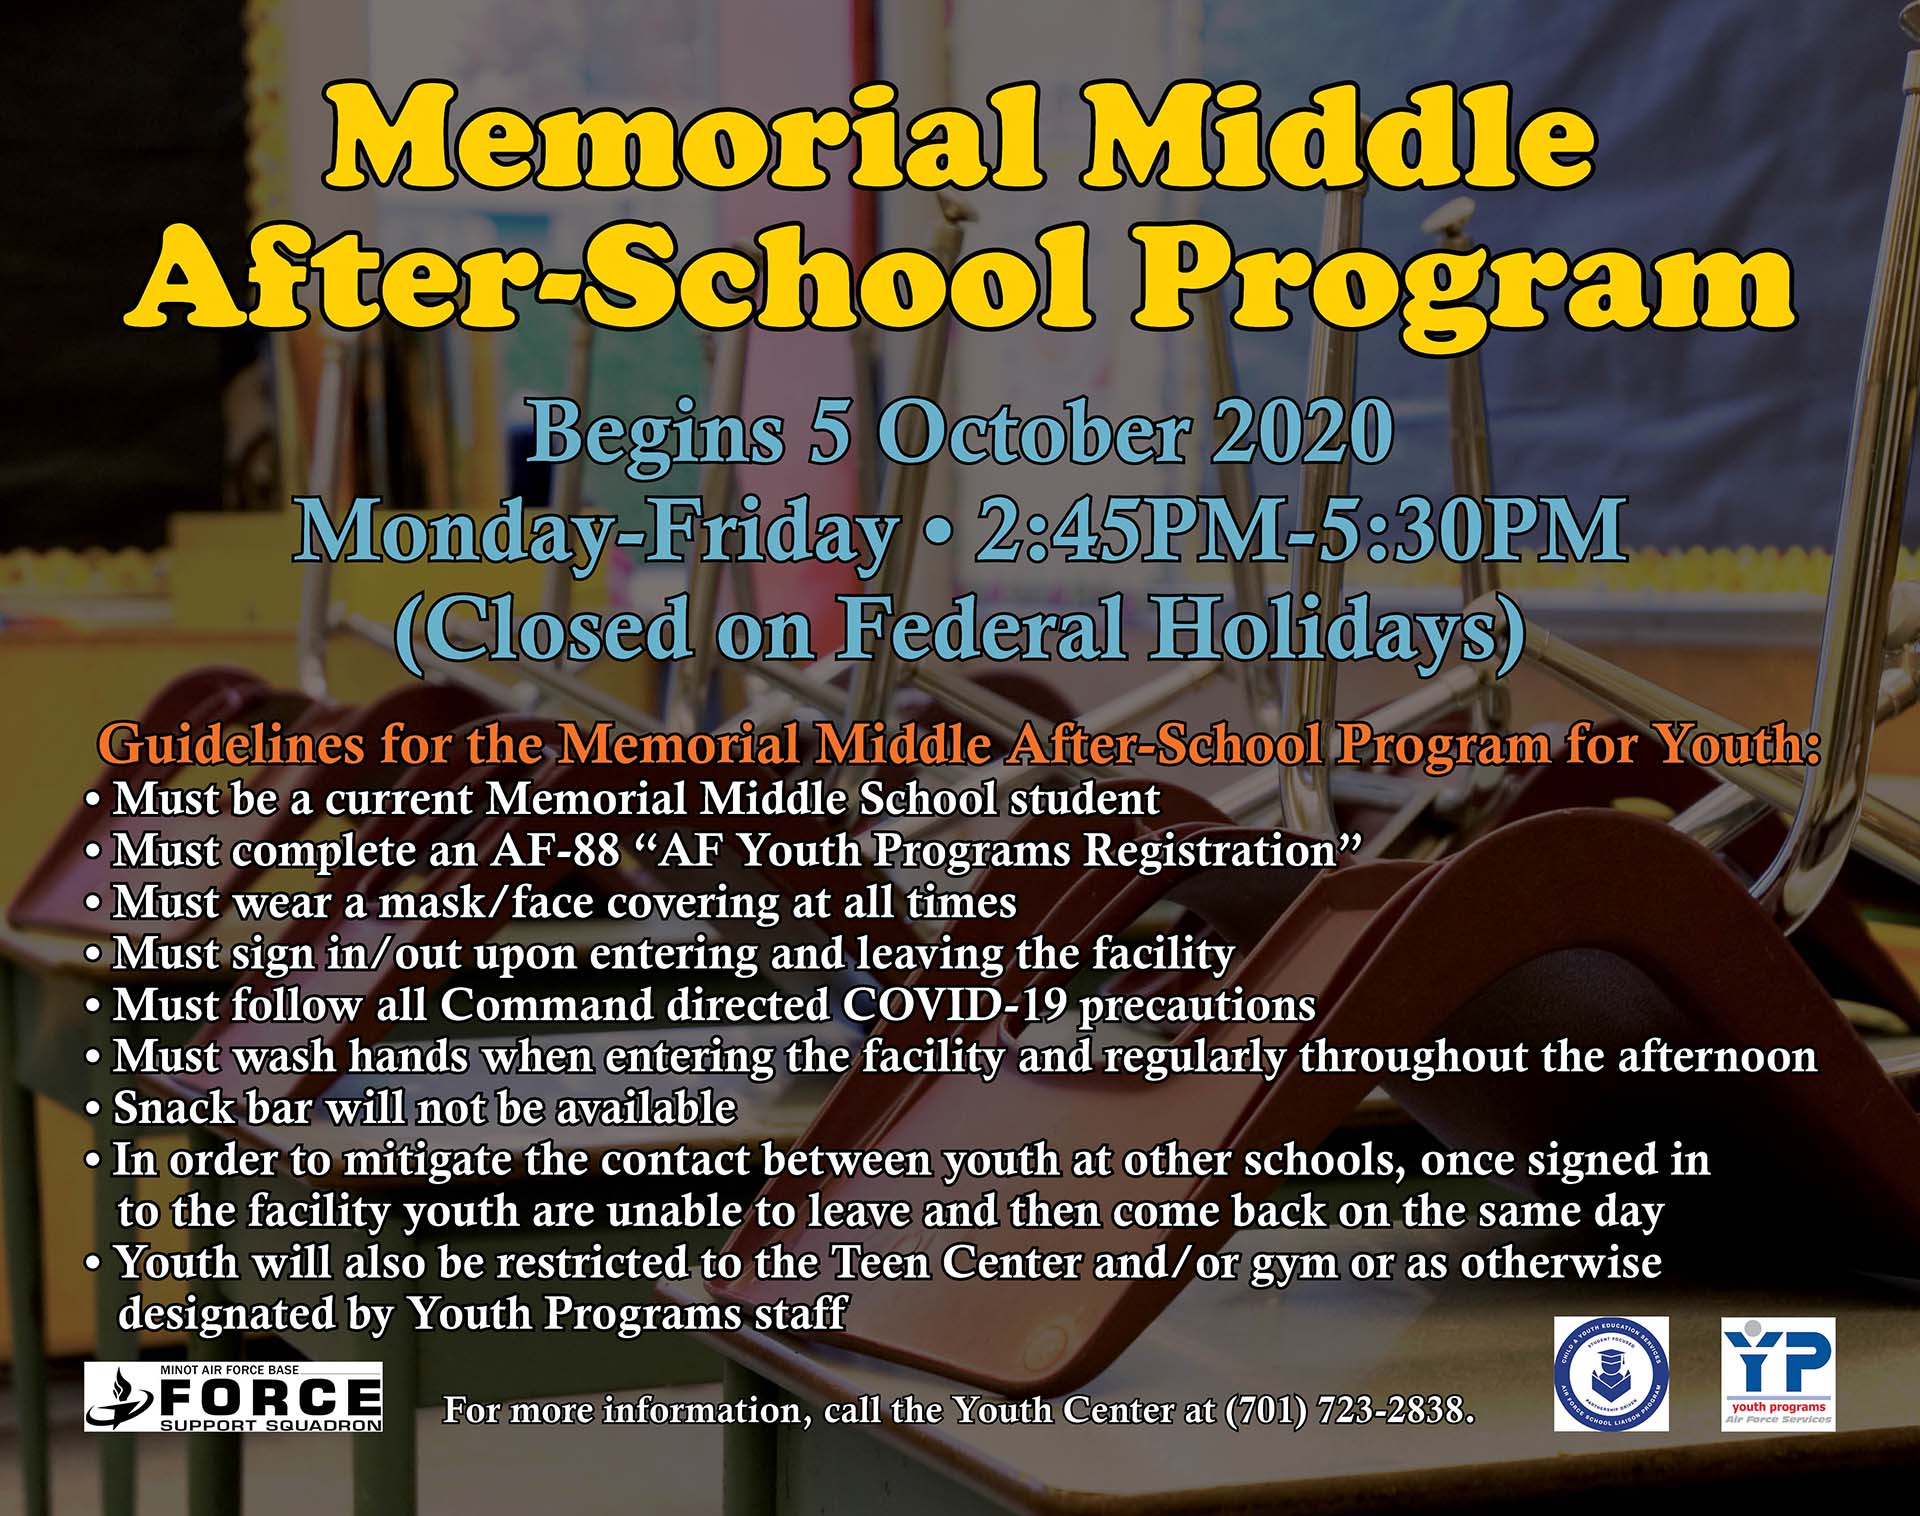 Memorial Middle After-School Program Begins